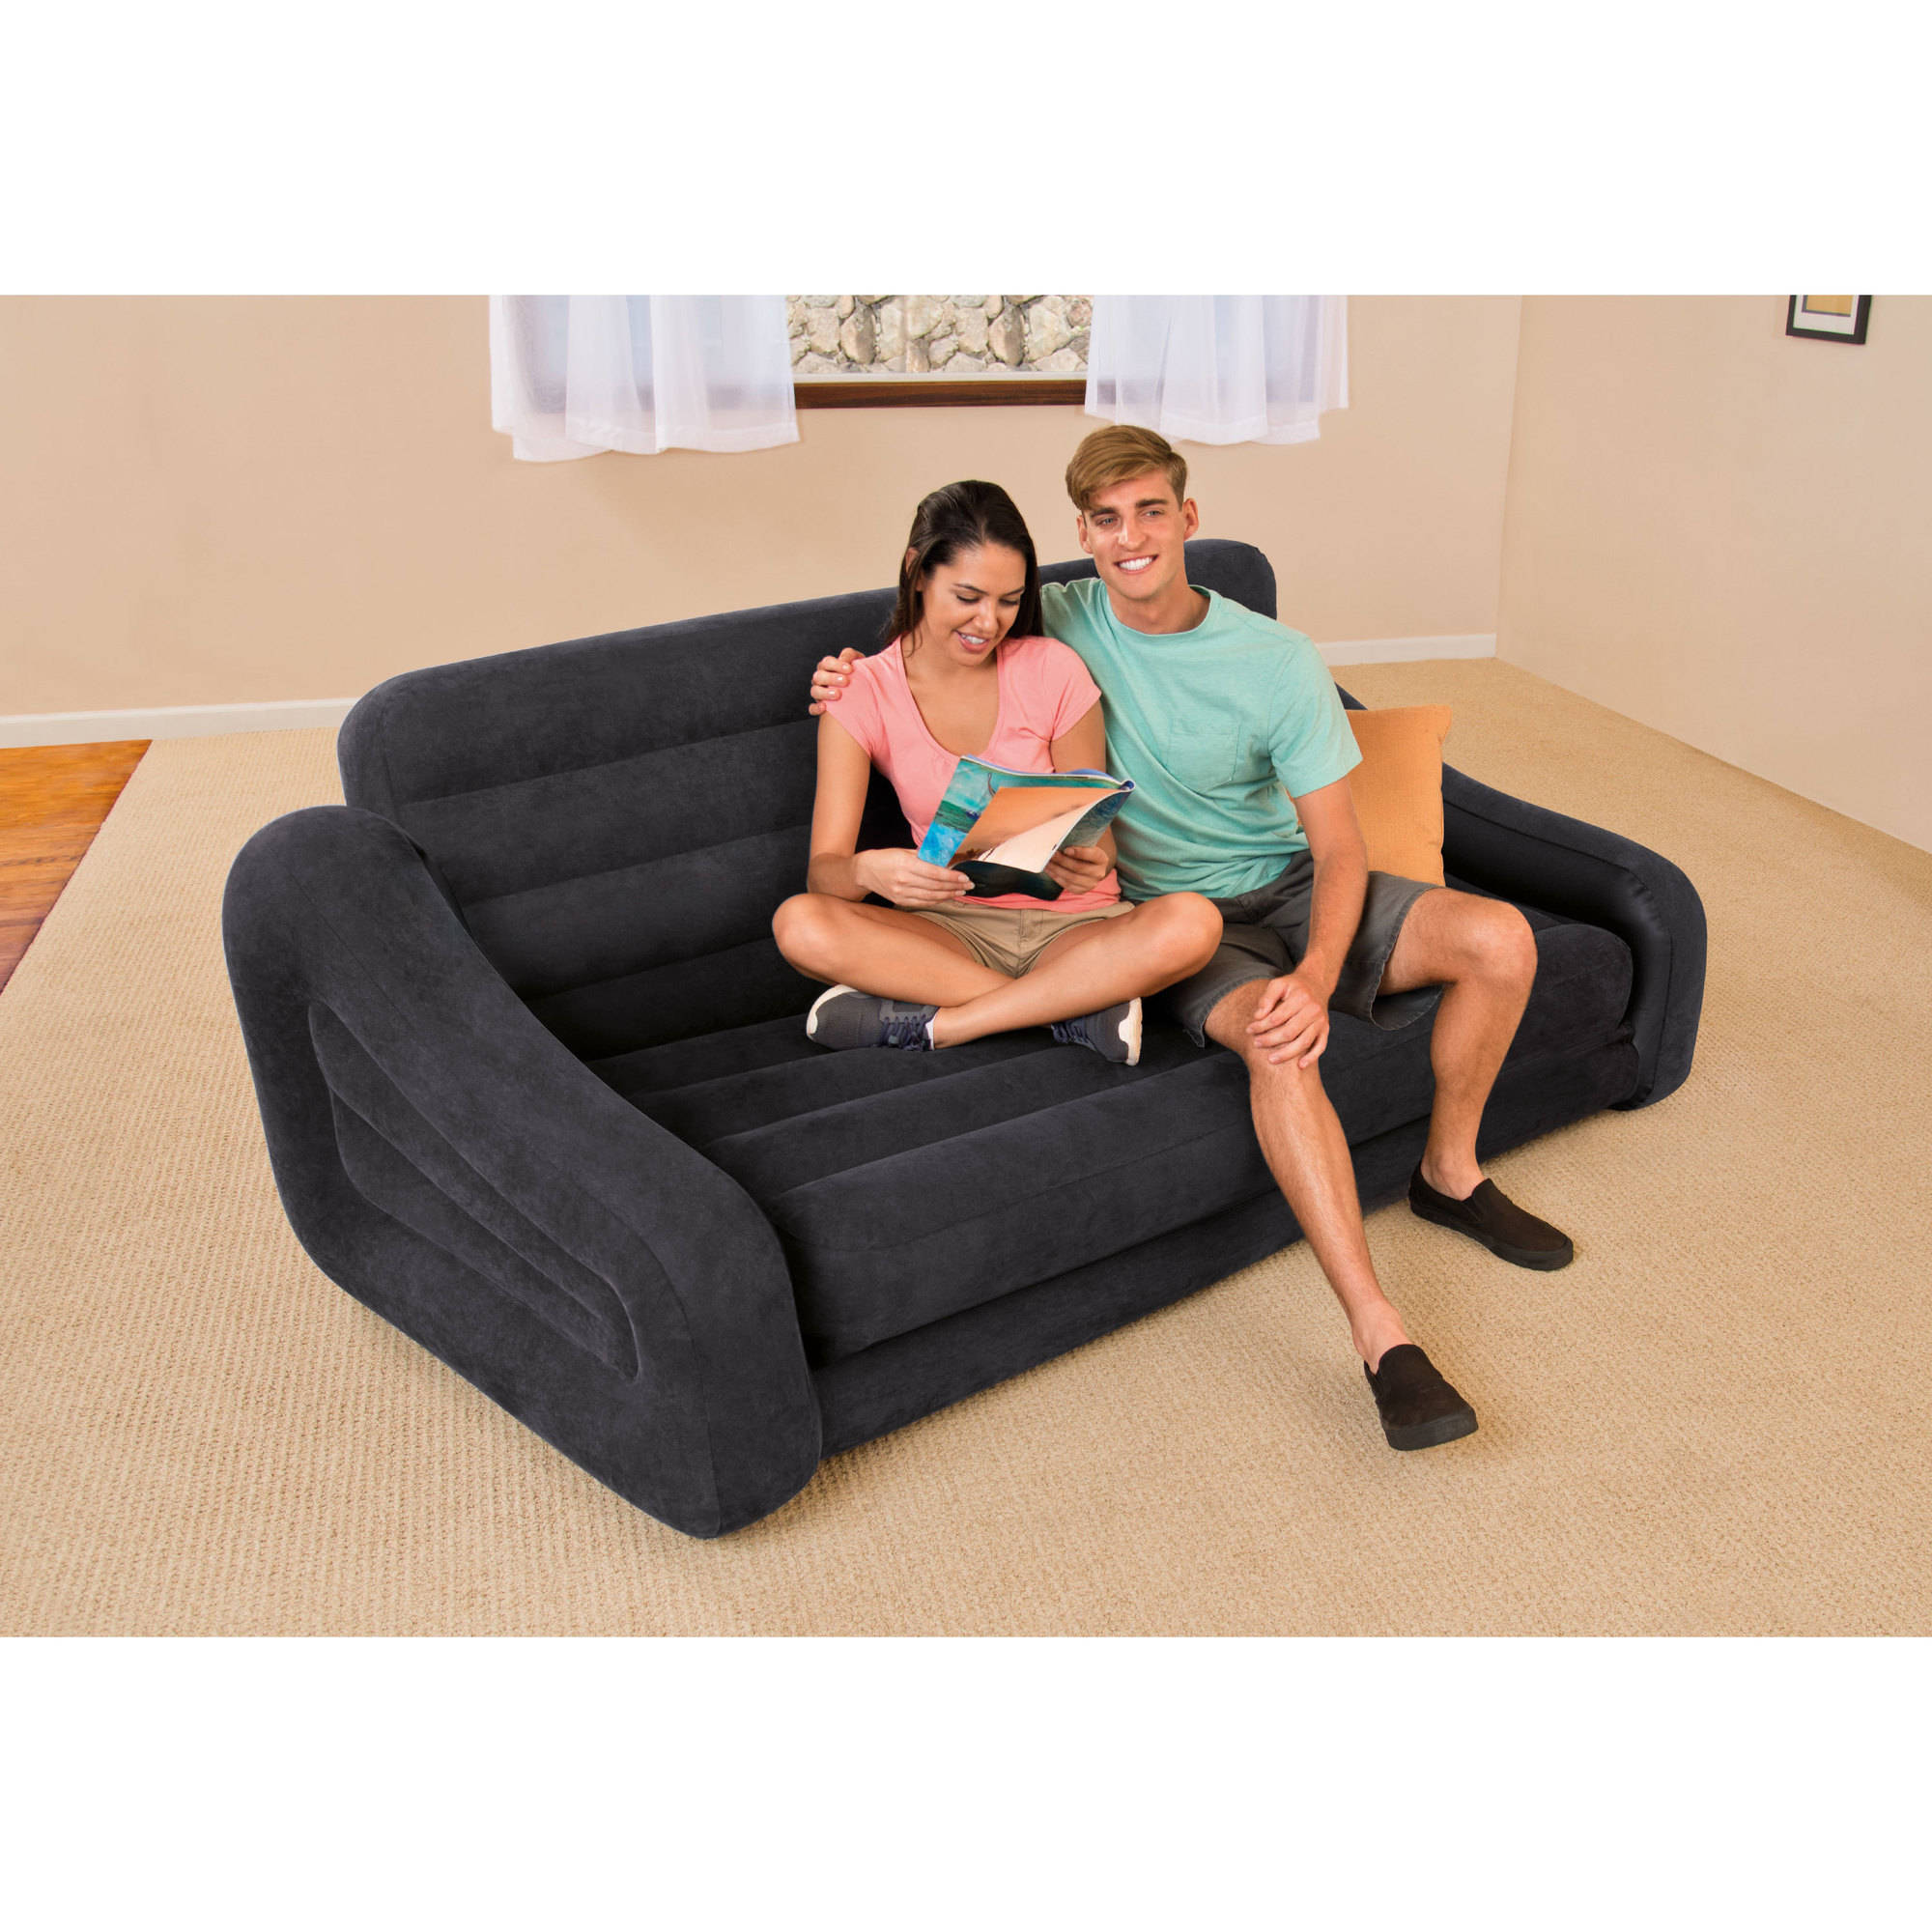 Intex Queen Inflatable Pull Out Sofa Bed 1 Each Walmart Com